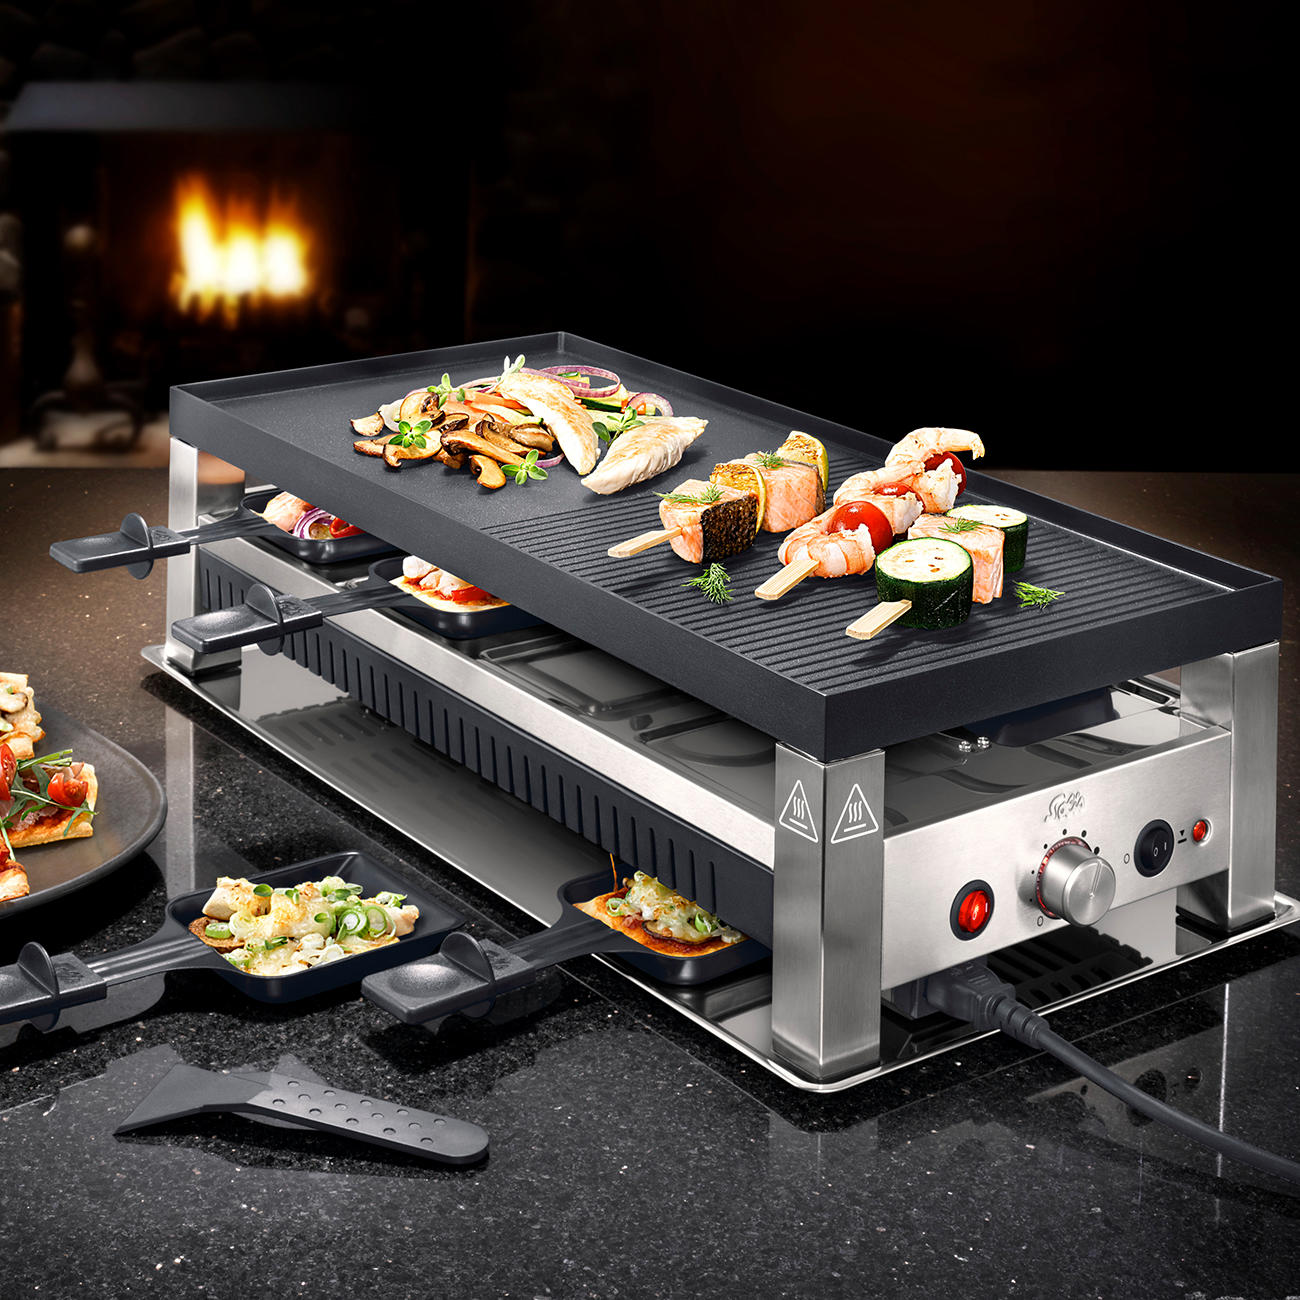 solis raclette tischgrill table grill 5 in 1 kaufen. Black Bedroom Furniture Sets. Home Design Ideas